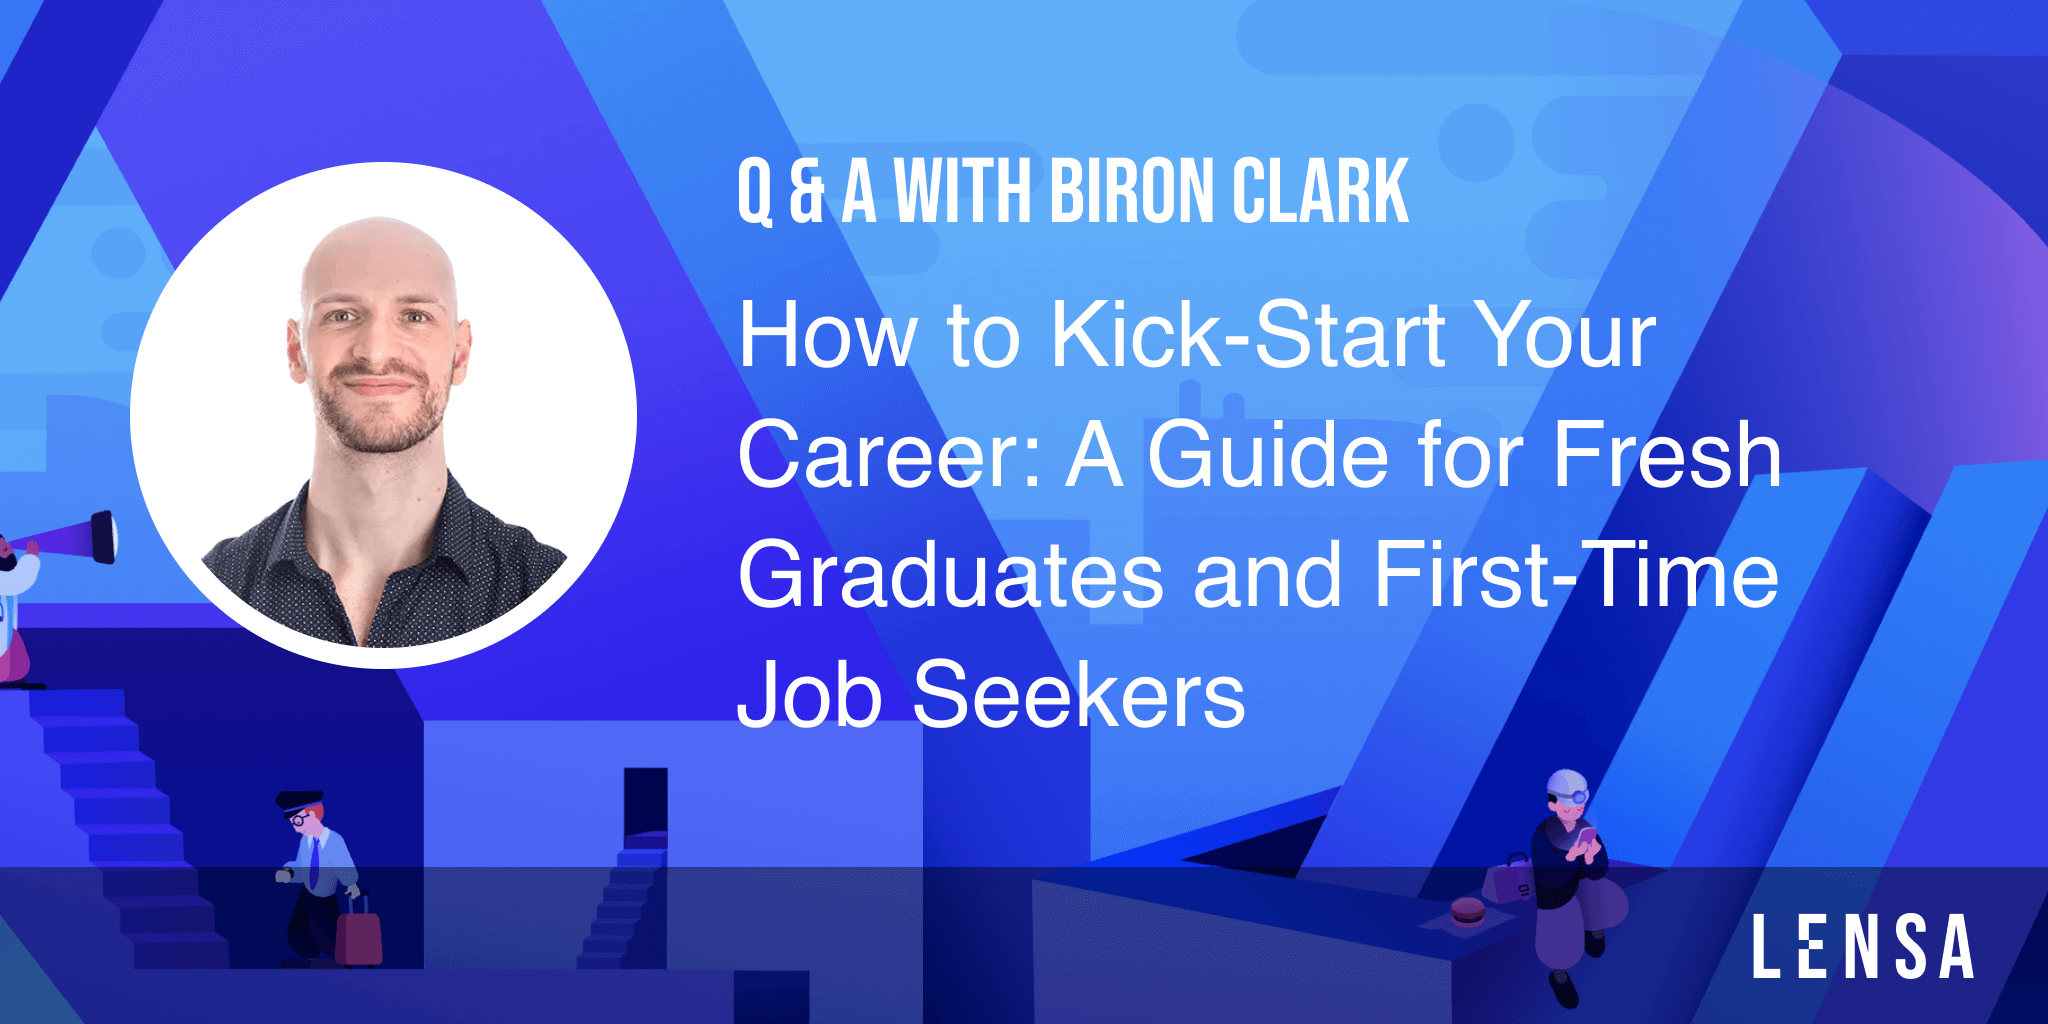 Q&A with Biron Clark about job search for fresh graduates